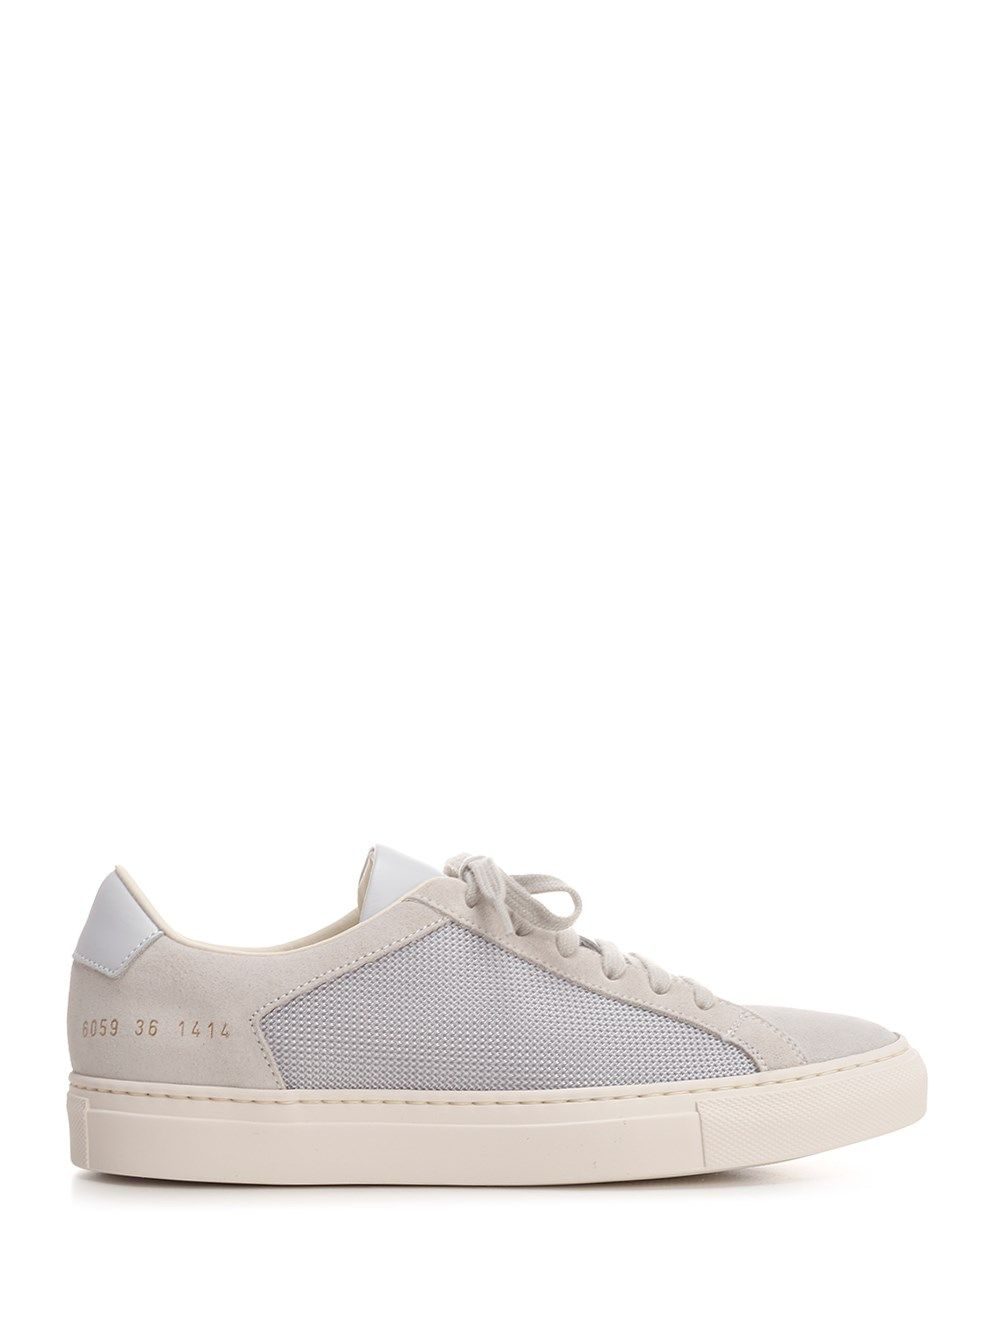 Common Projects Low tops COMMON PROJECTS WOMEN'S 60591414 LIGHT BLUE OTHER MATERIALS SNEAKERS